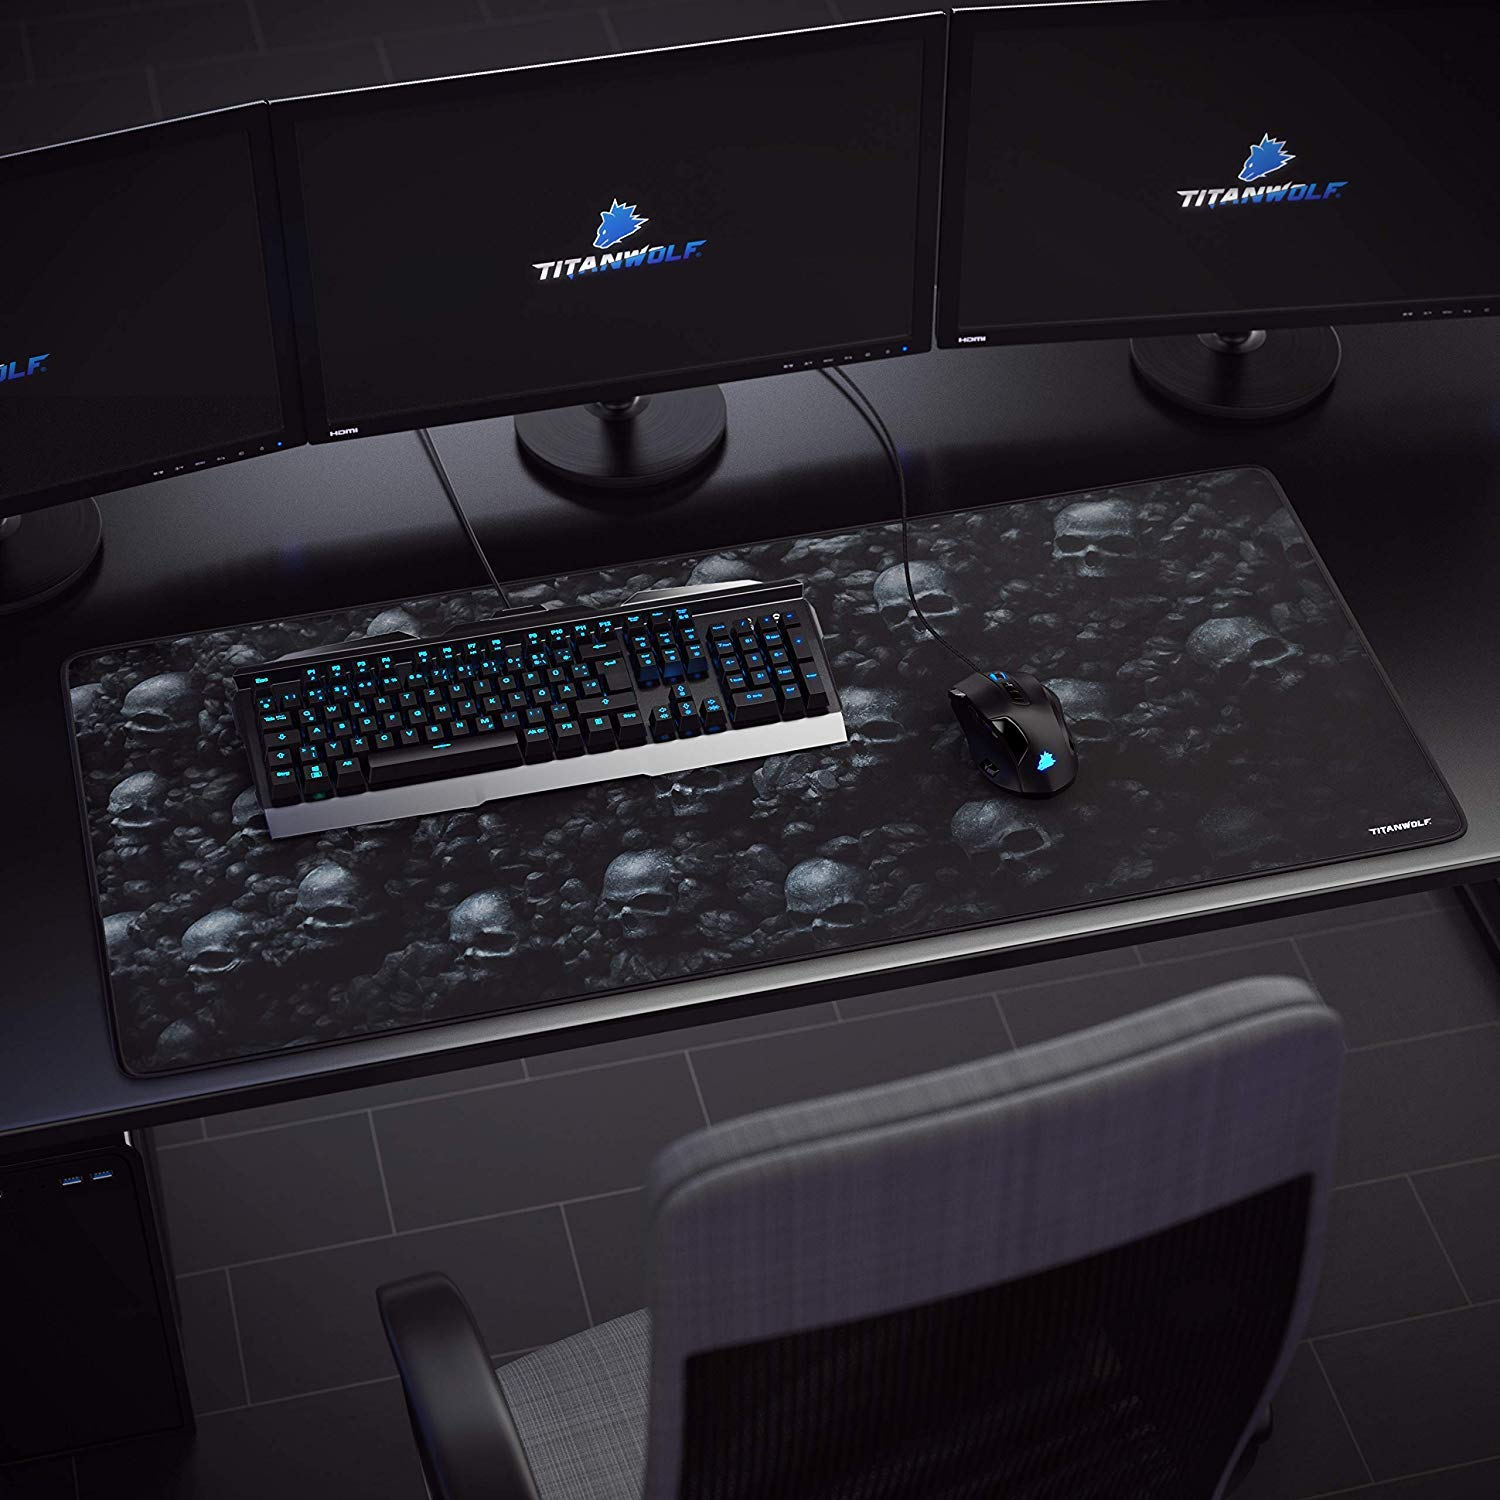 titanwolf 900x400  Titanwolf - Tappetino per Mouse | XXL Gaming Mousepad/Mouse Pad 900 ...